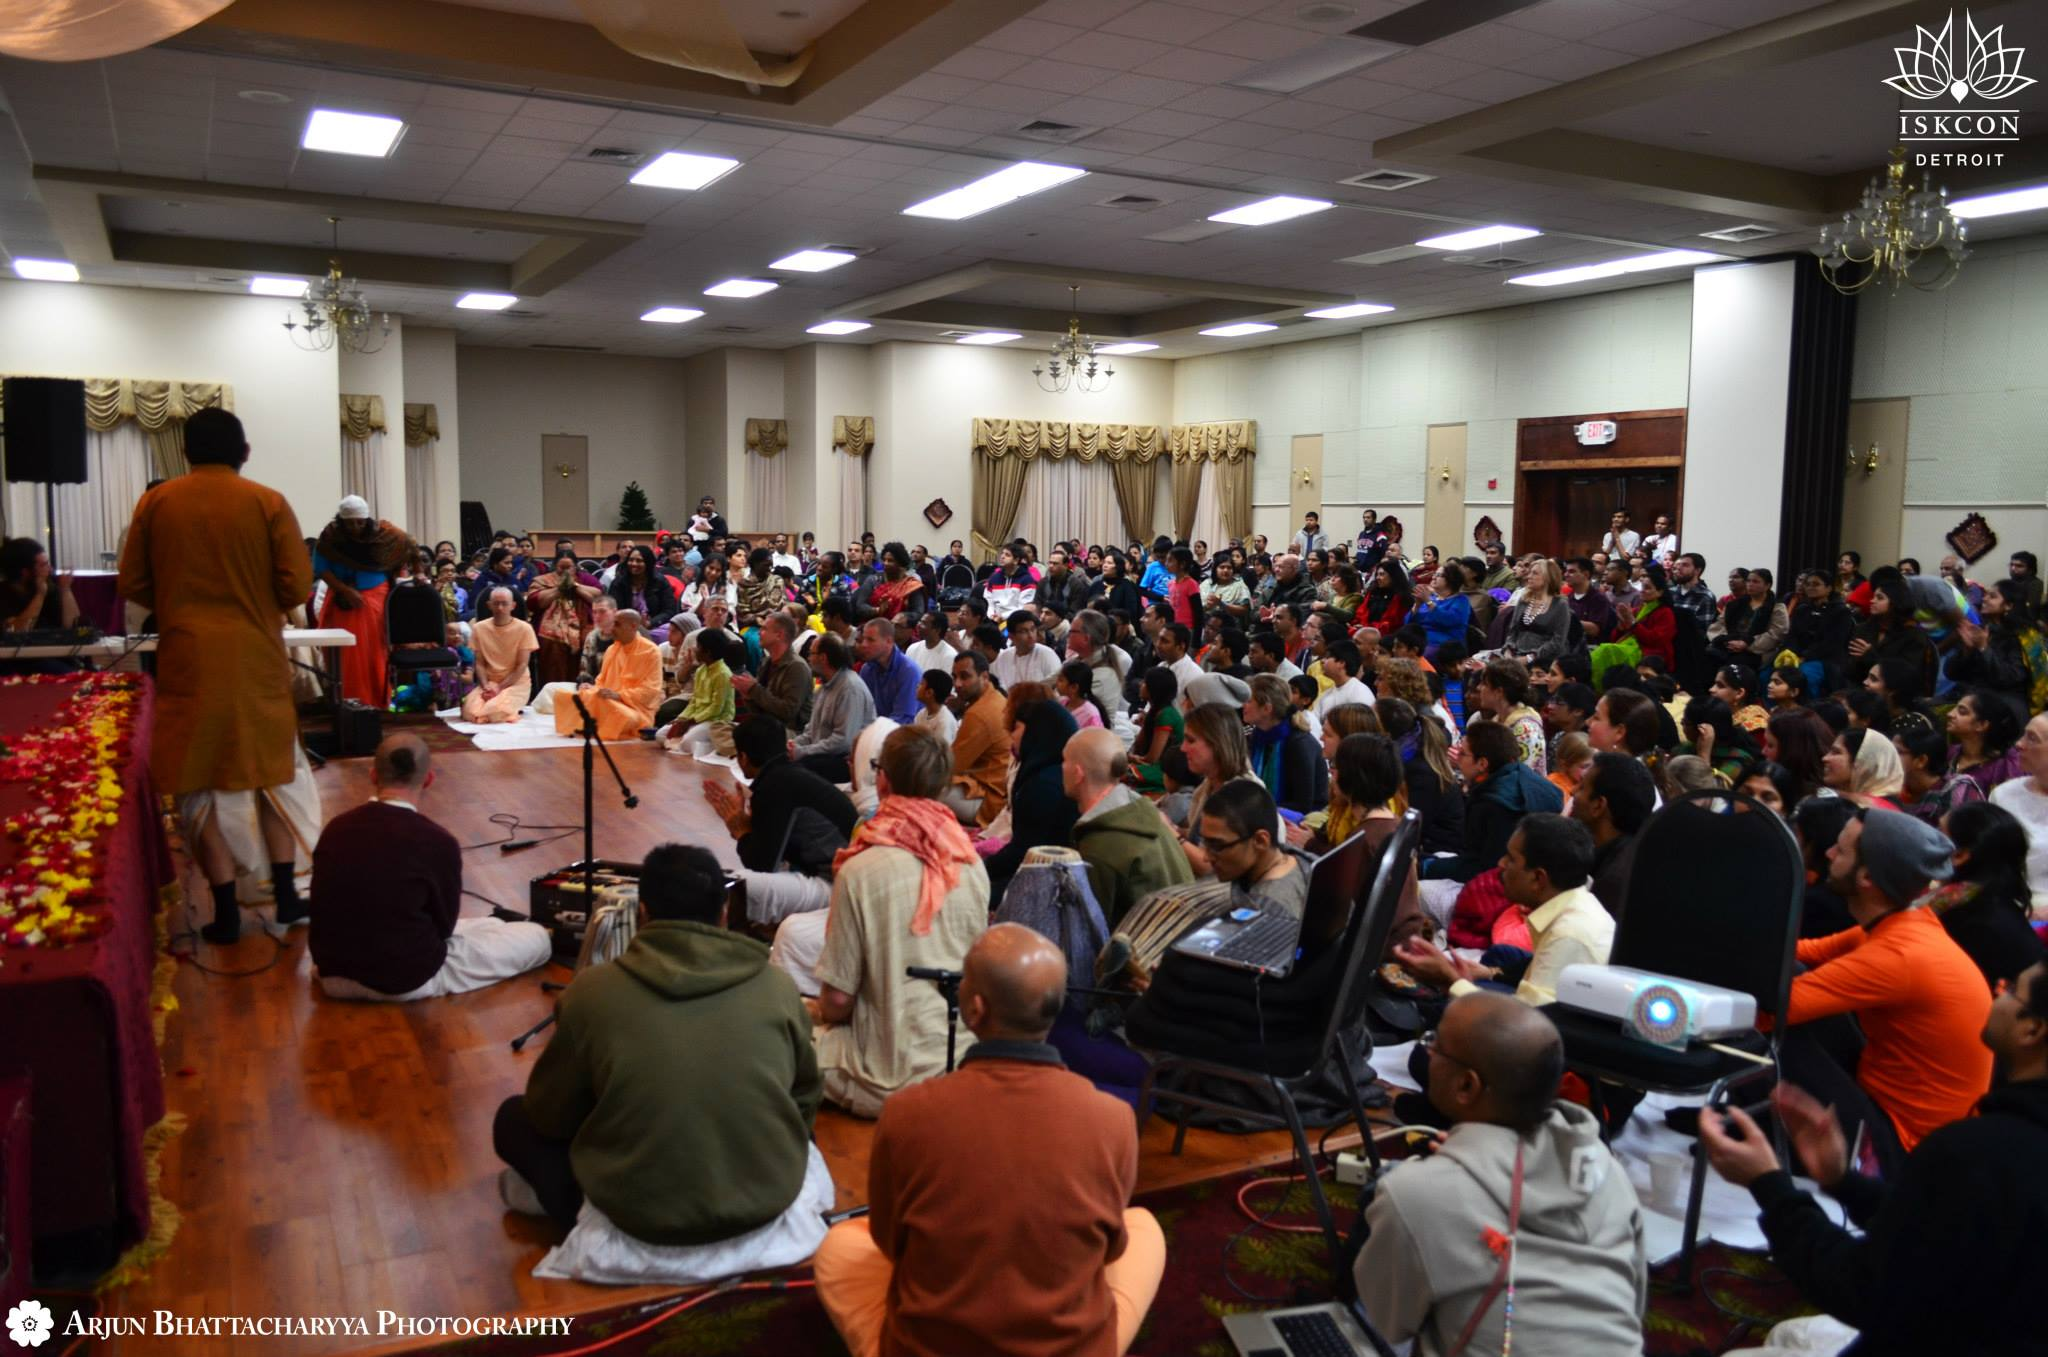 Devotee's at Radhanath Swami Lecture